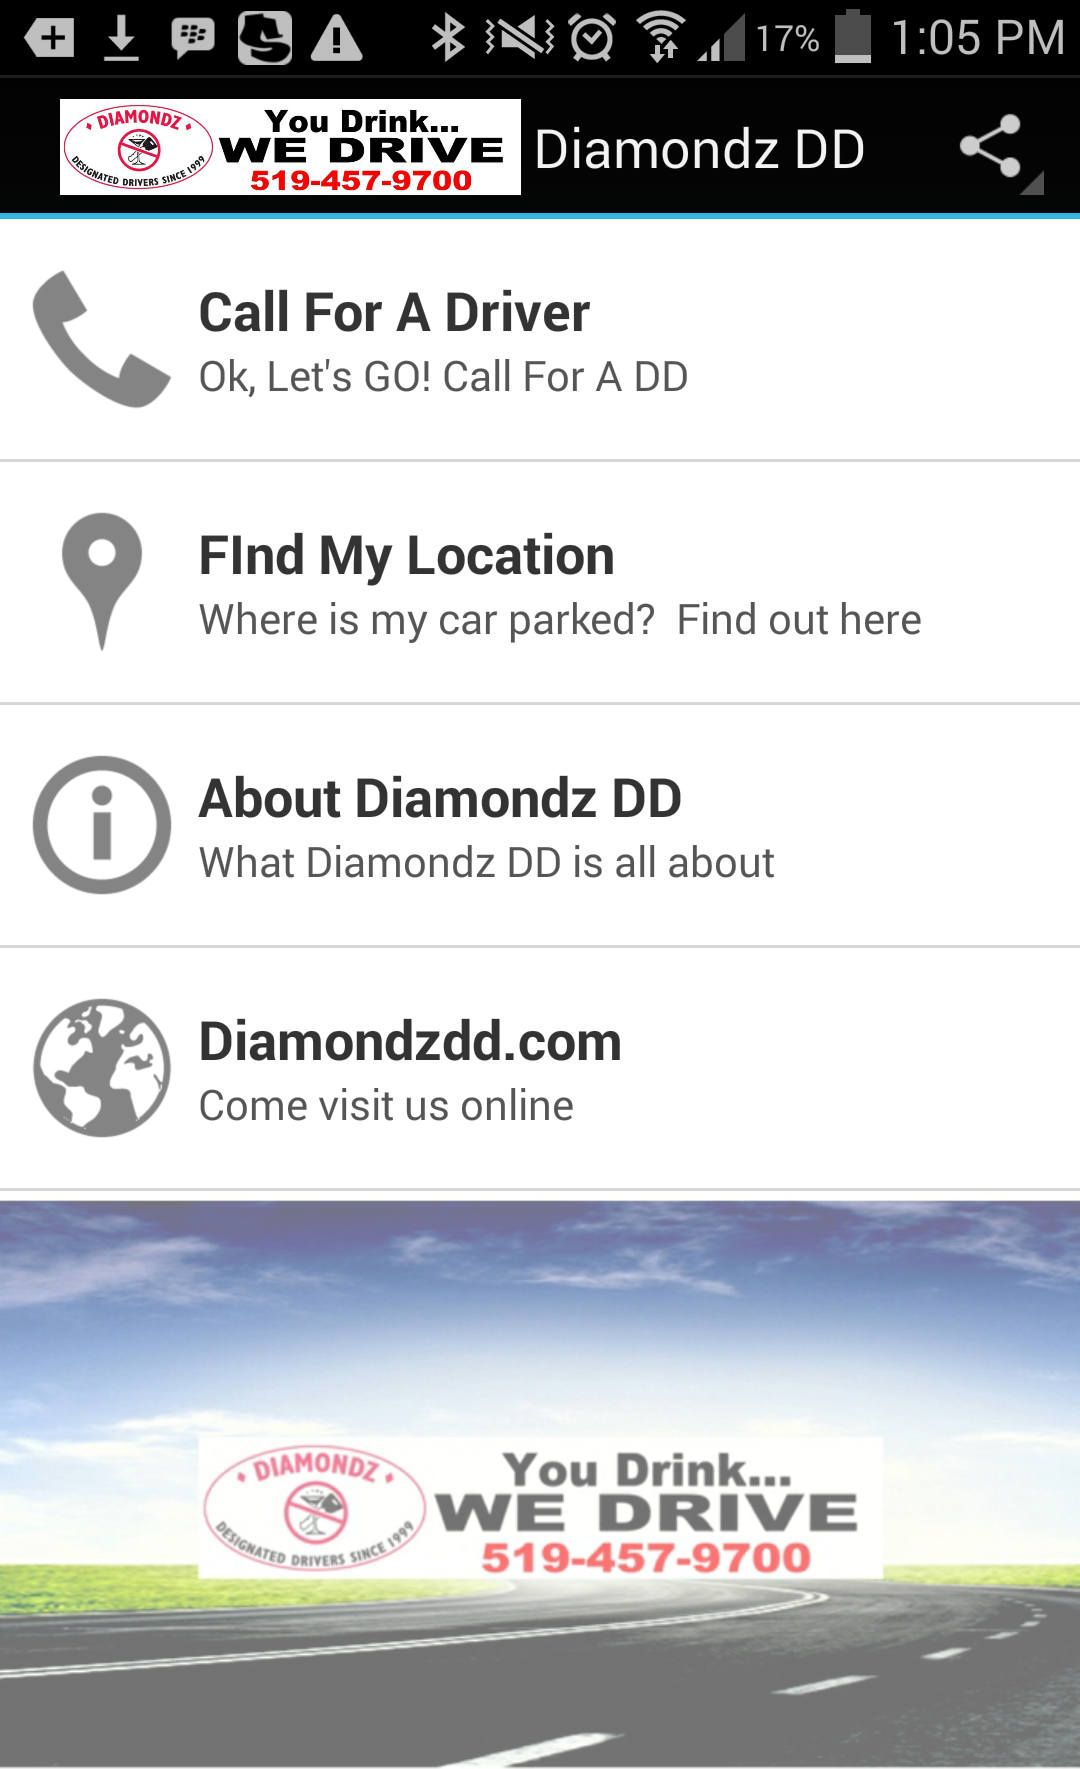 Diamondz DD Android App